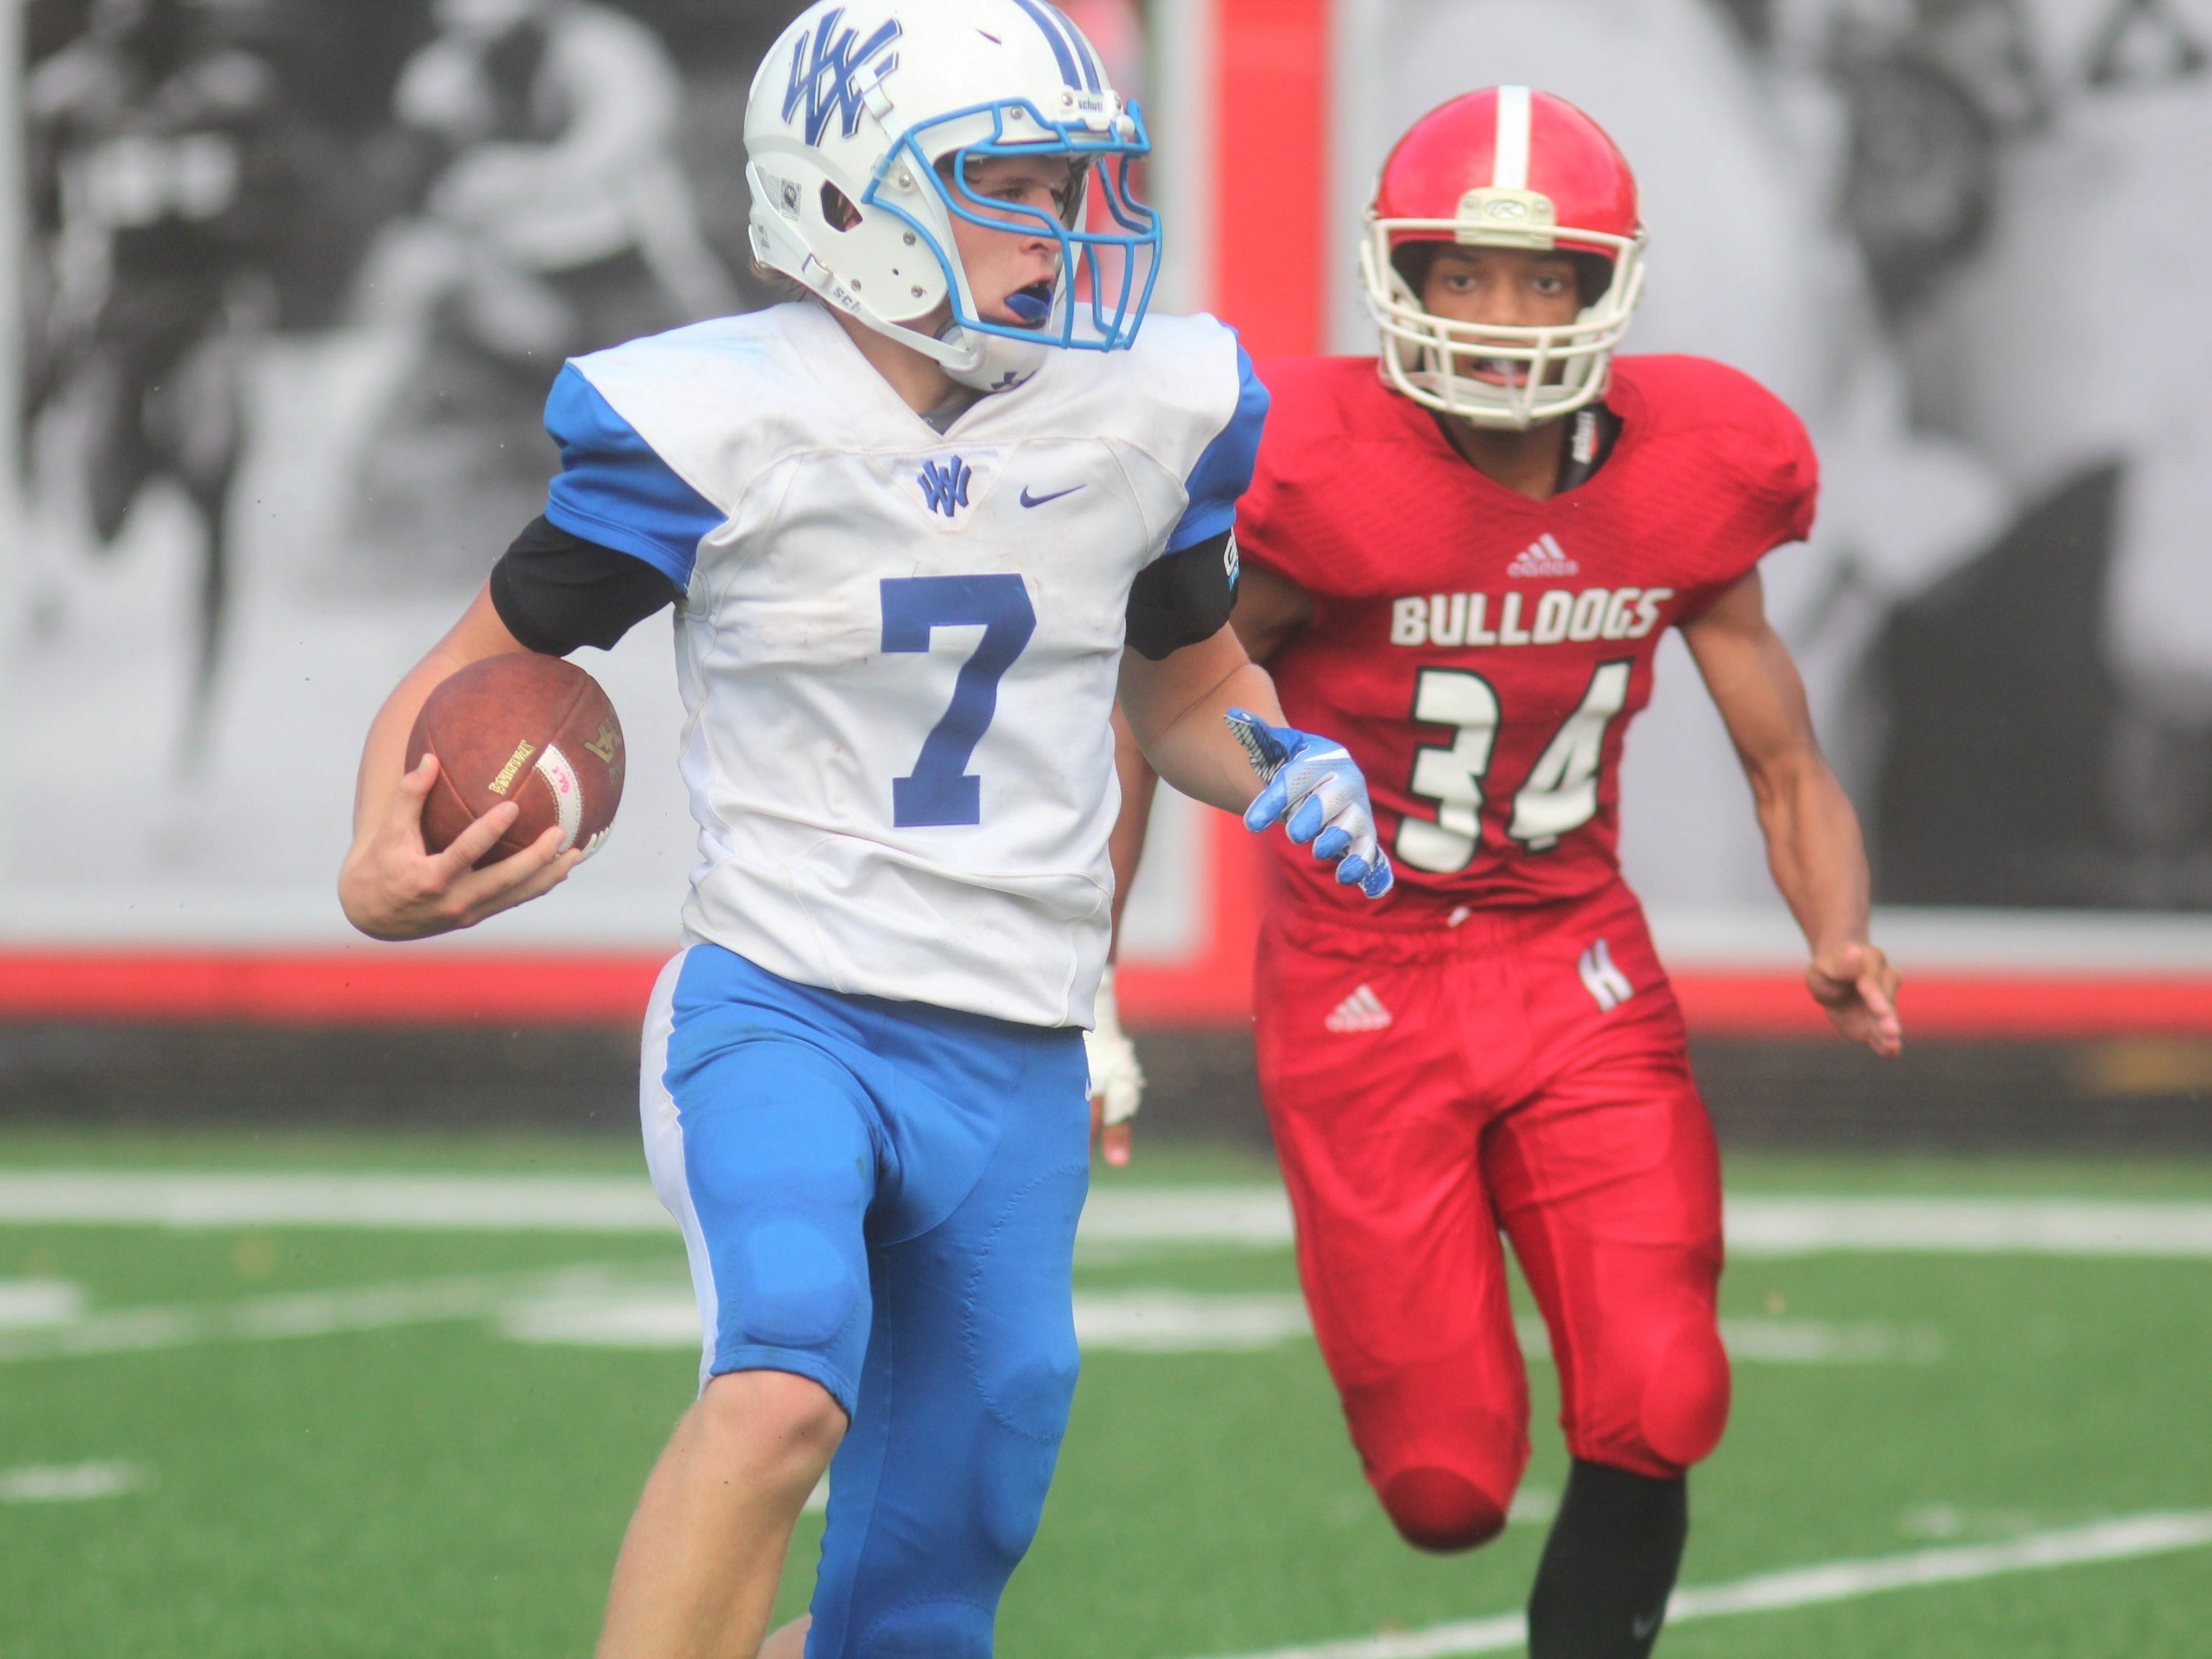 Walton-Verona senior QB Garrett Jones tries to elude Holmes junior Marcus Elmer during Walton-Verona's 48-0 win over Holmes September 1, 2018 at Holmes High School, Covington KY. The game concluded on Saturday morning after being suspended at halftime because of weather.